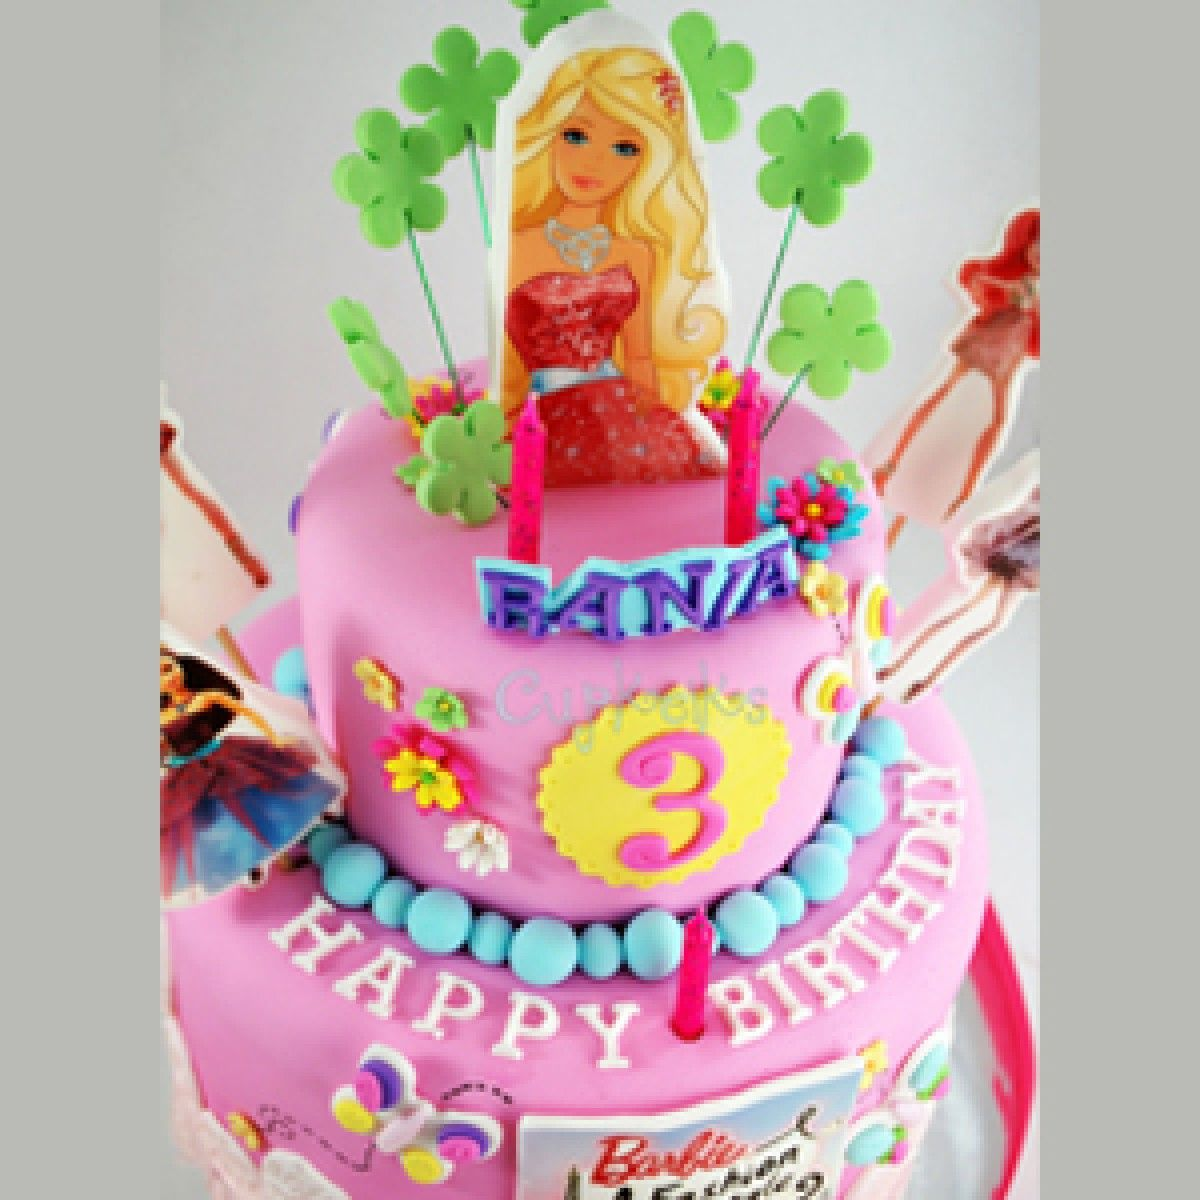 27 Excellent Image Of Order Birthday Cakes Online Barbie Doll Cake In Bangalore